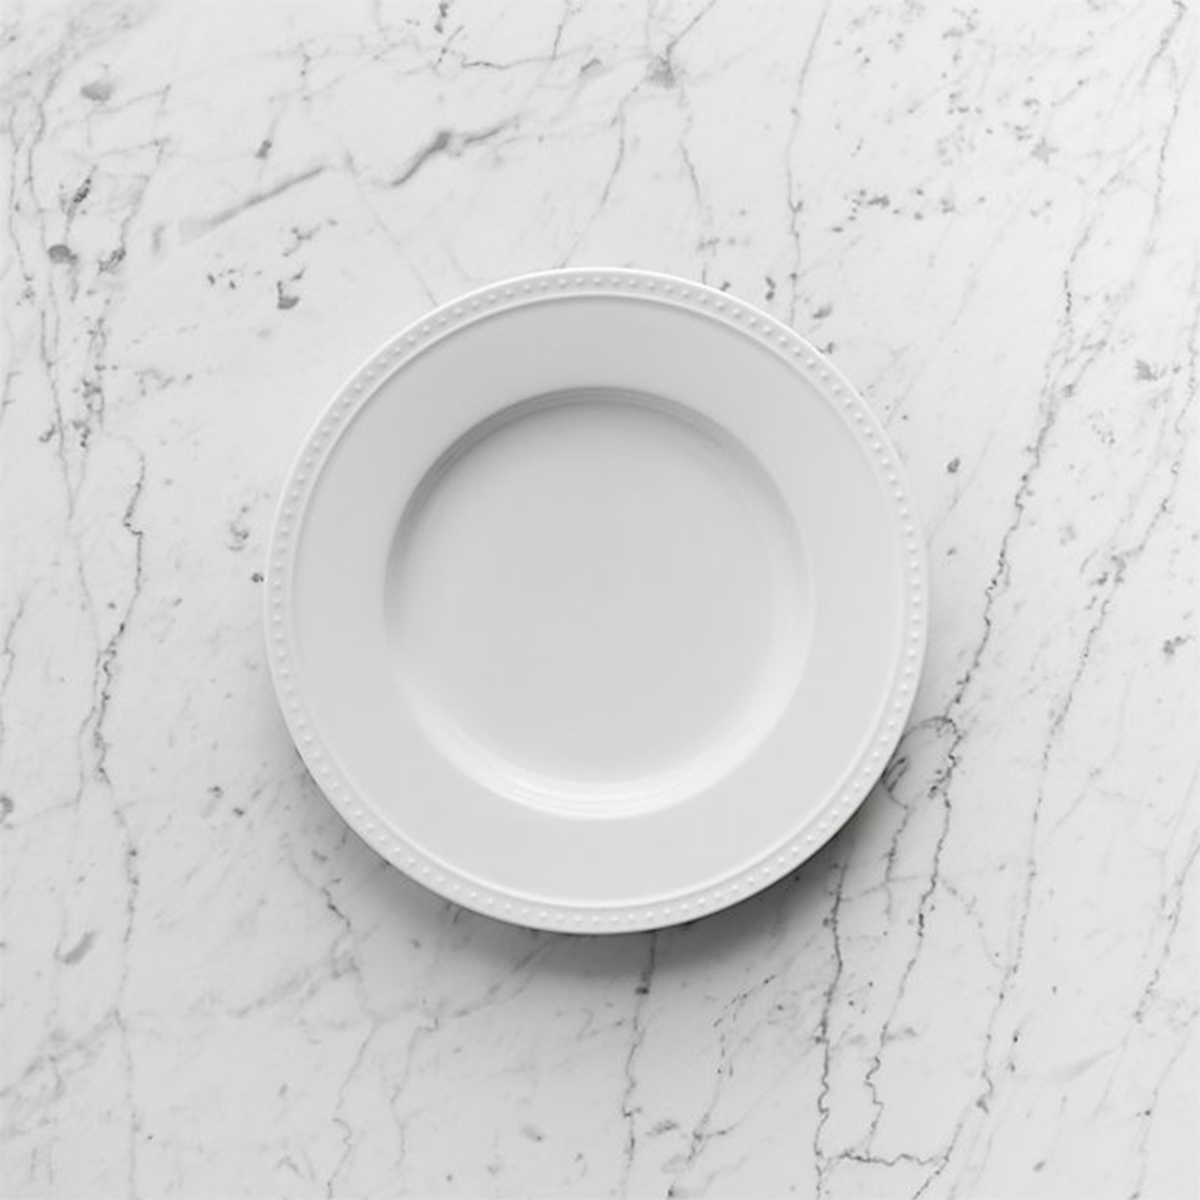 White dinnerware with a dotted rim. photo